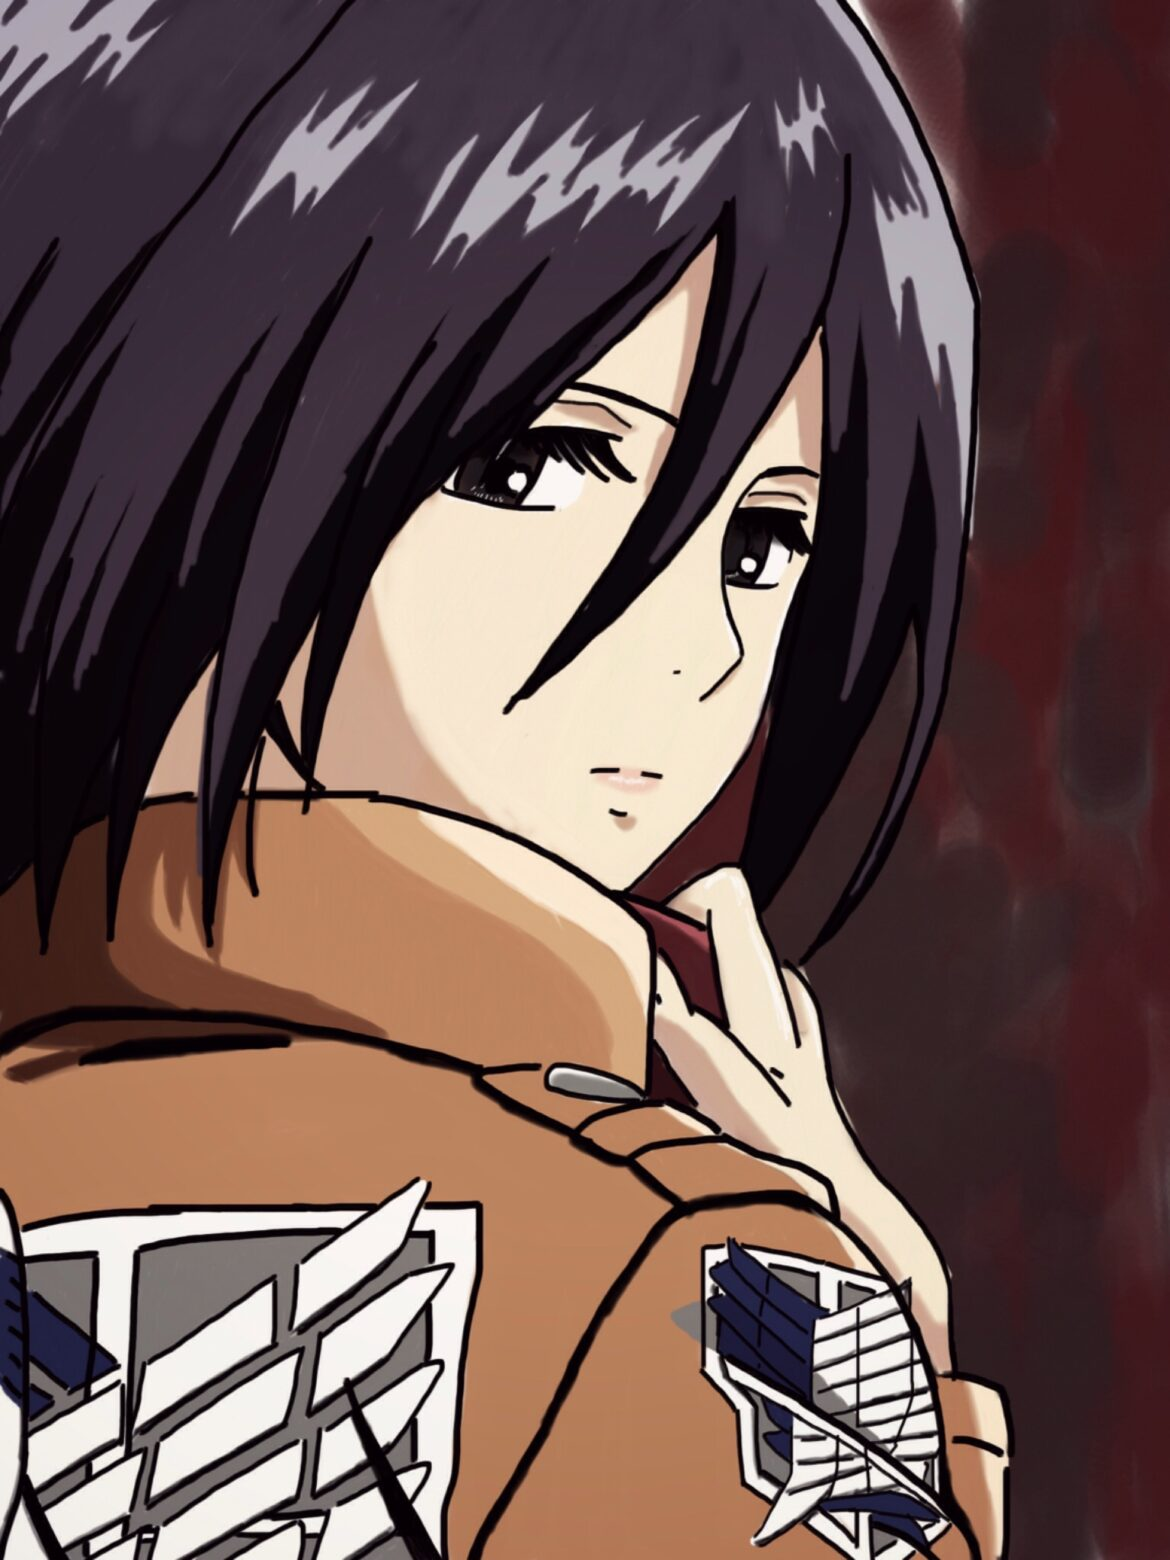 Read about Mikasa Ackerman's life in Attack on Titan